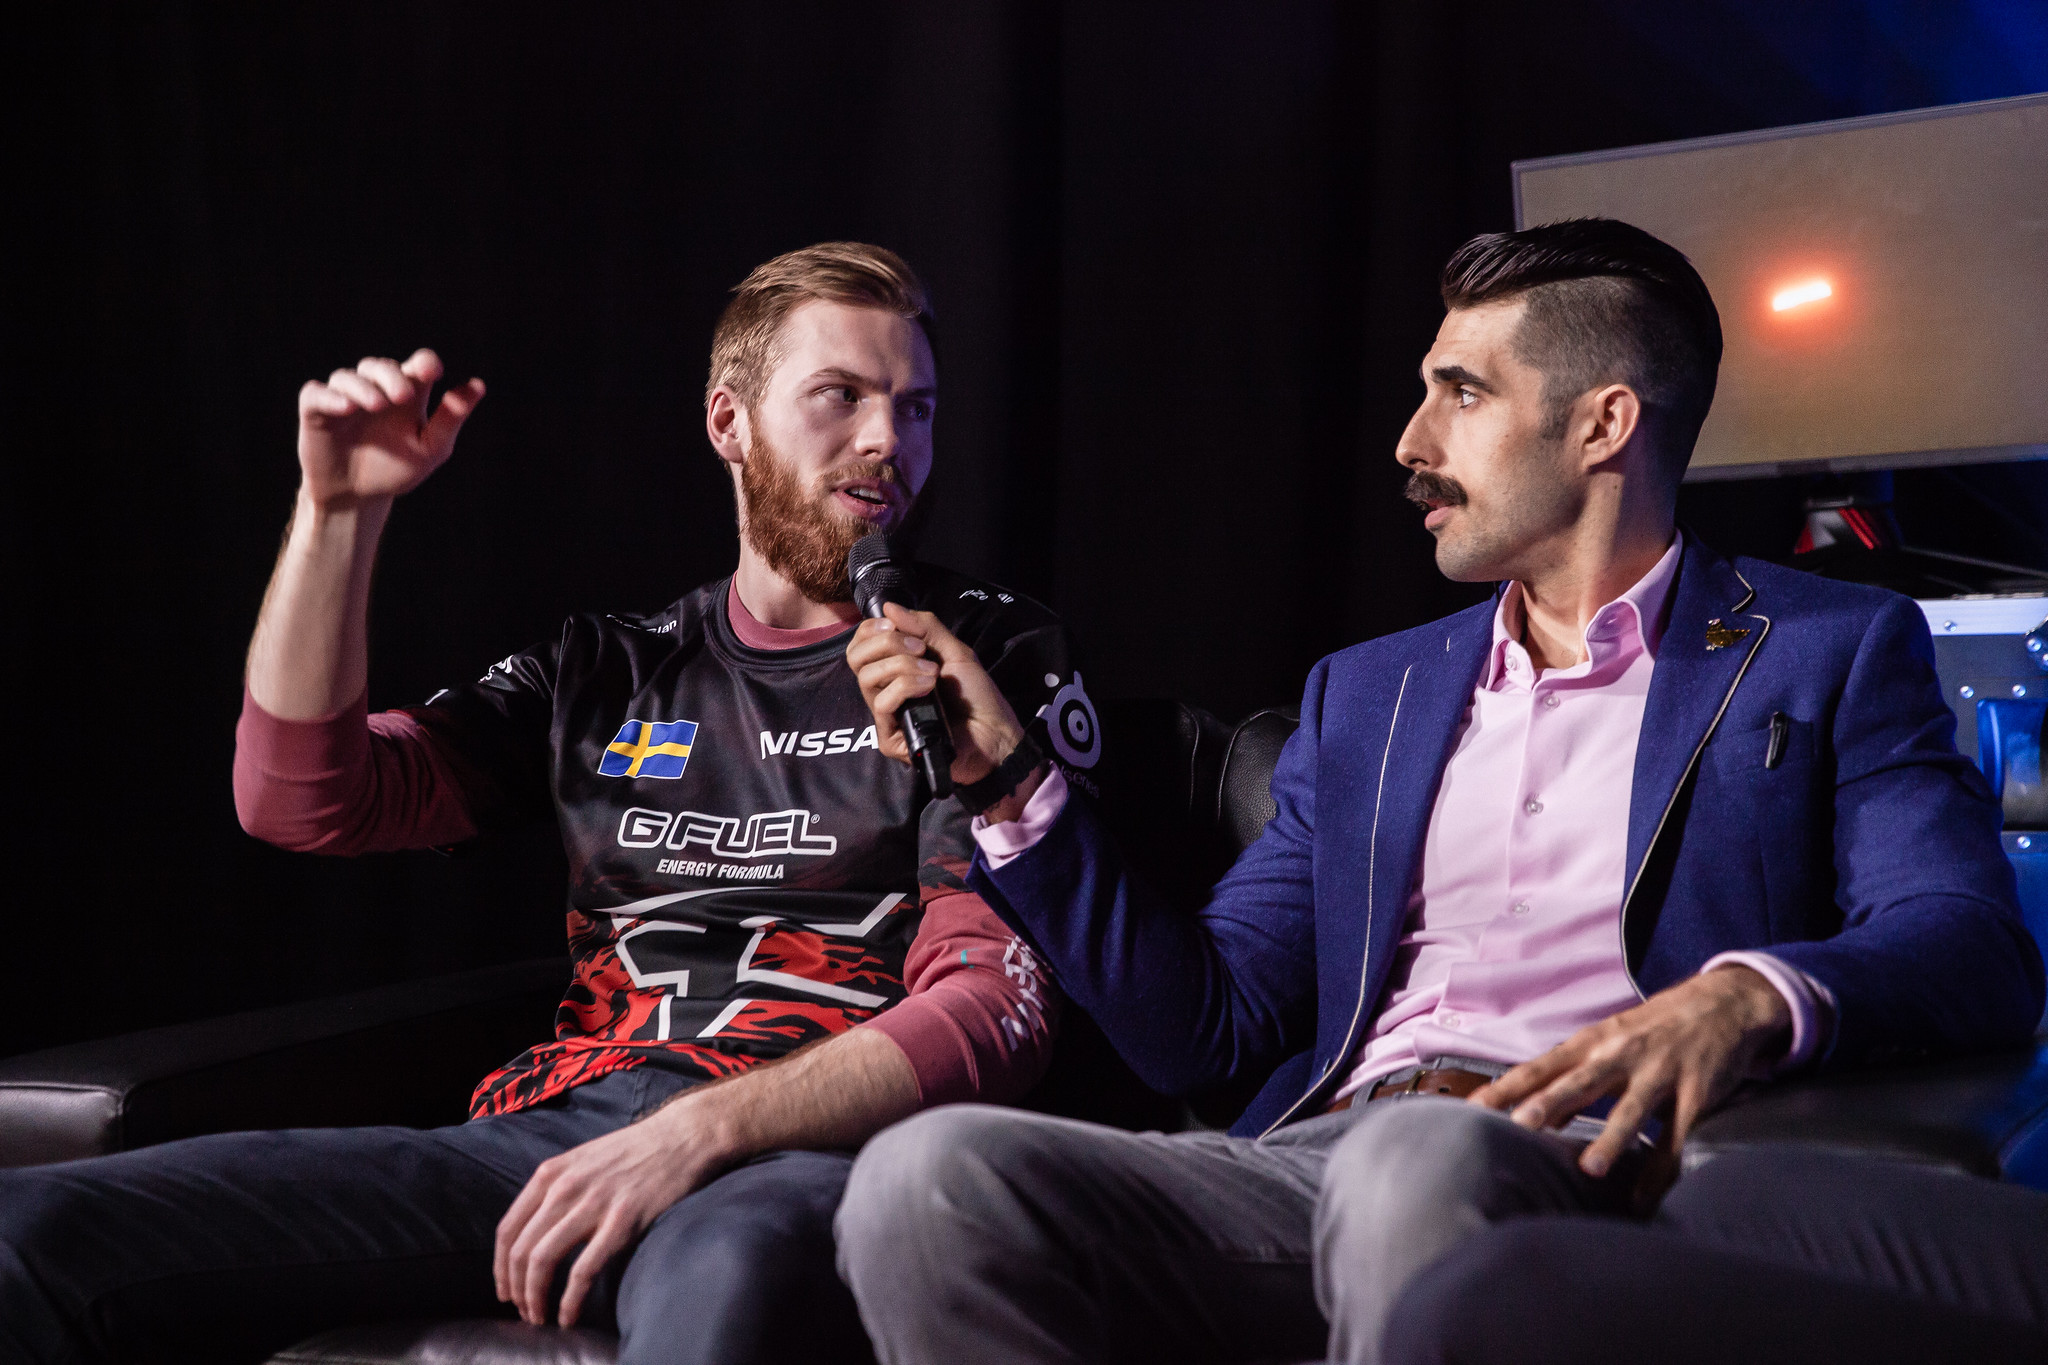 FaZe Fuzzface being interviewed